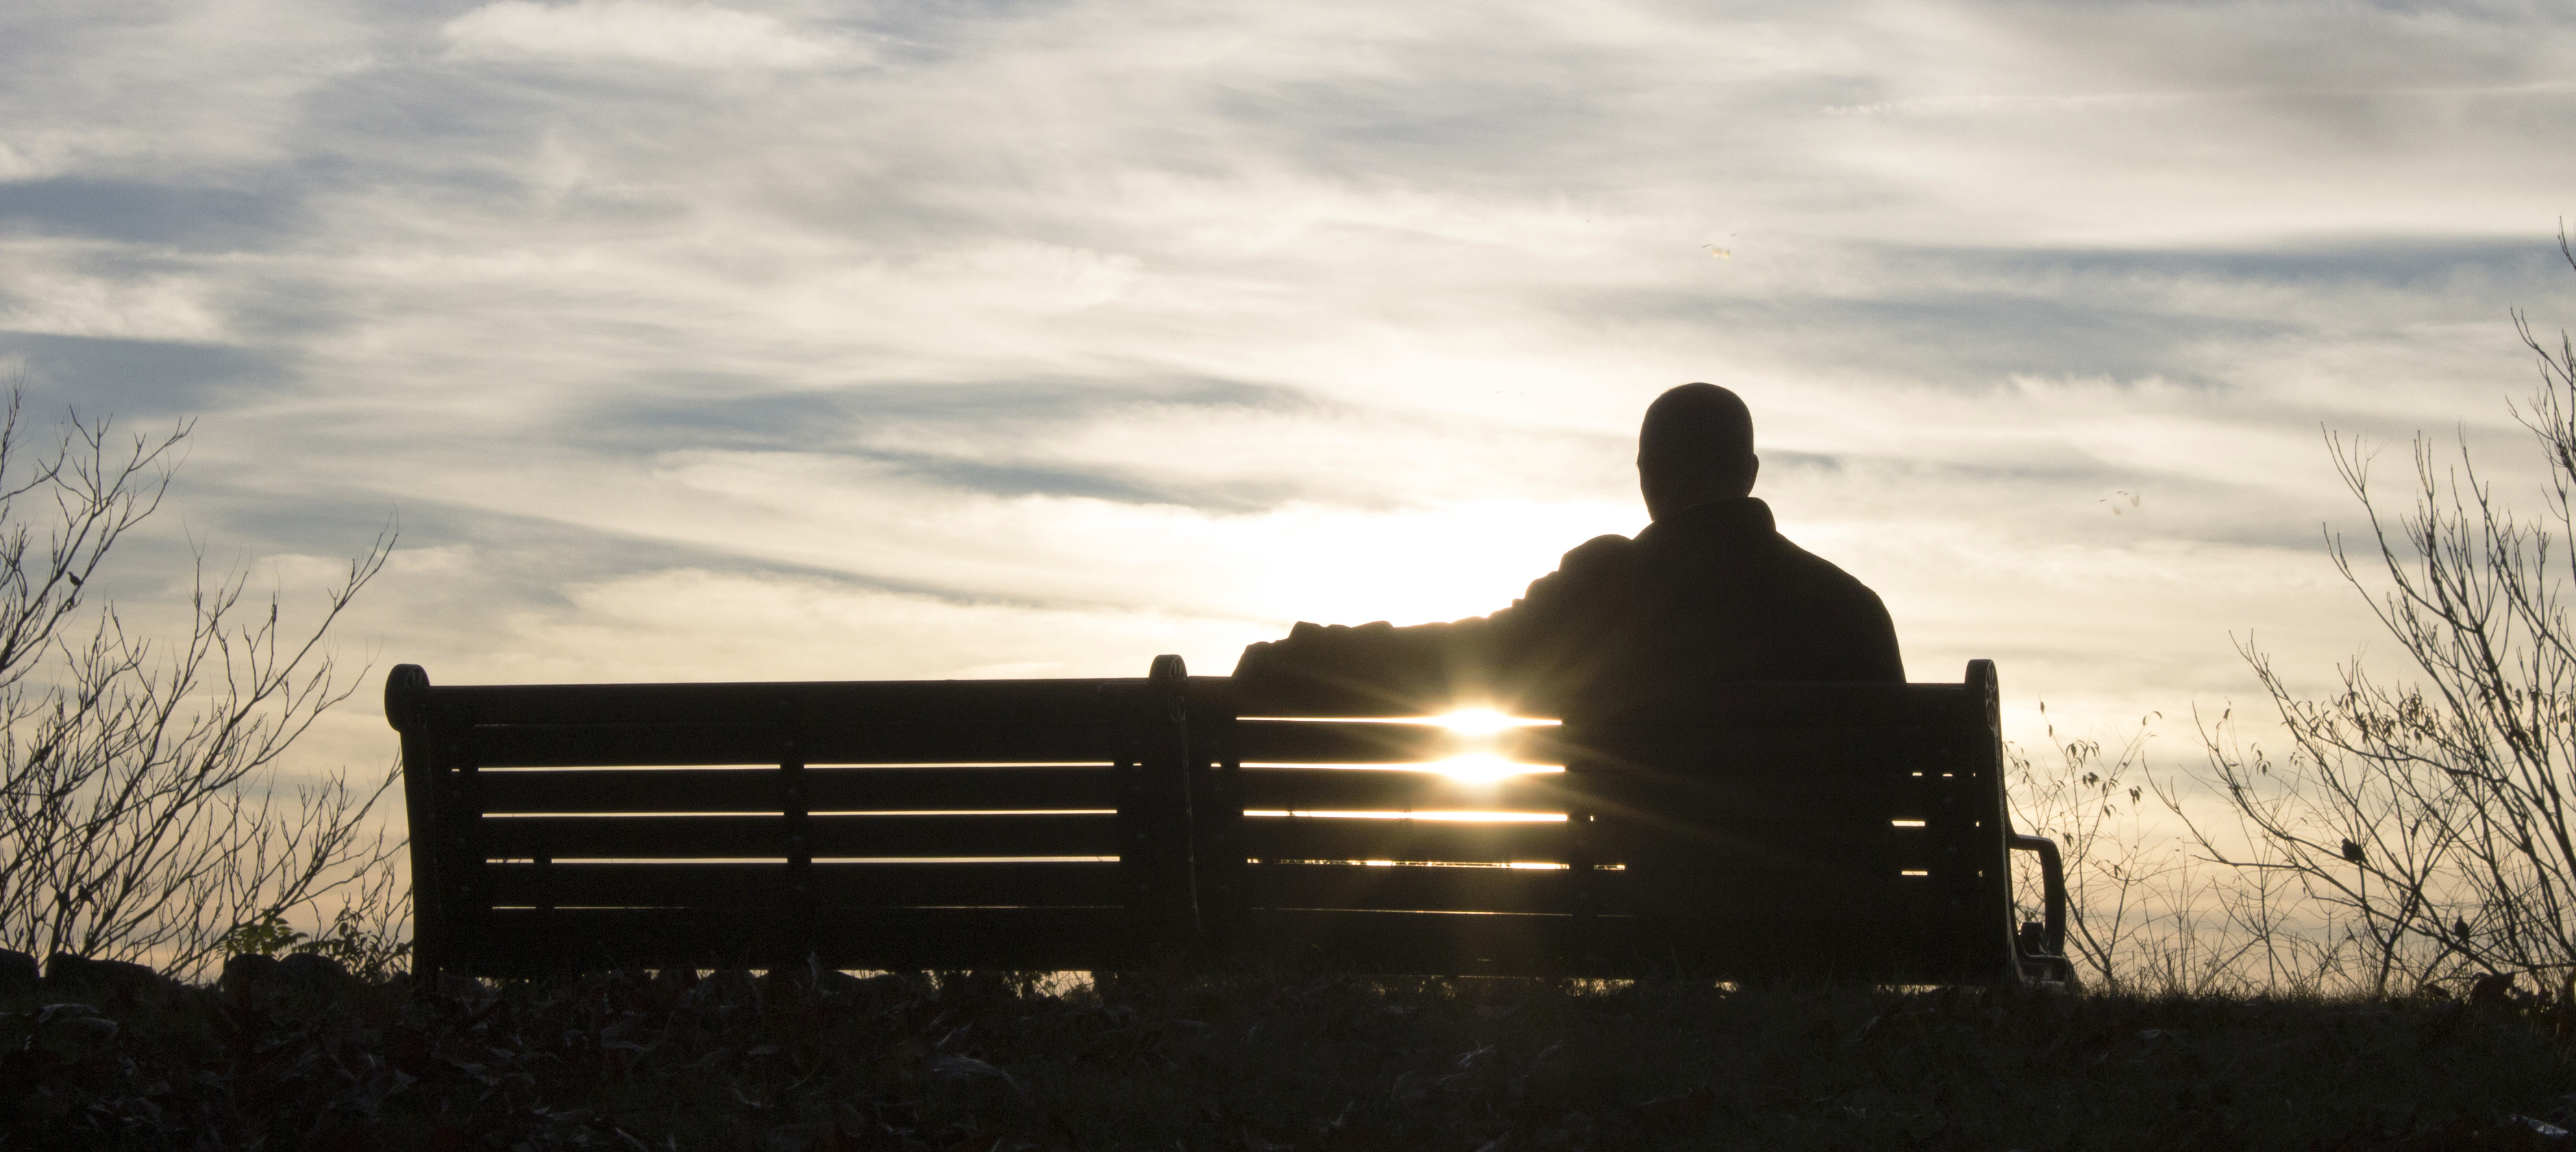 Sillouette of a man on a park bench